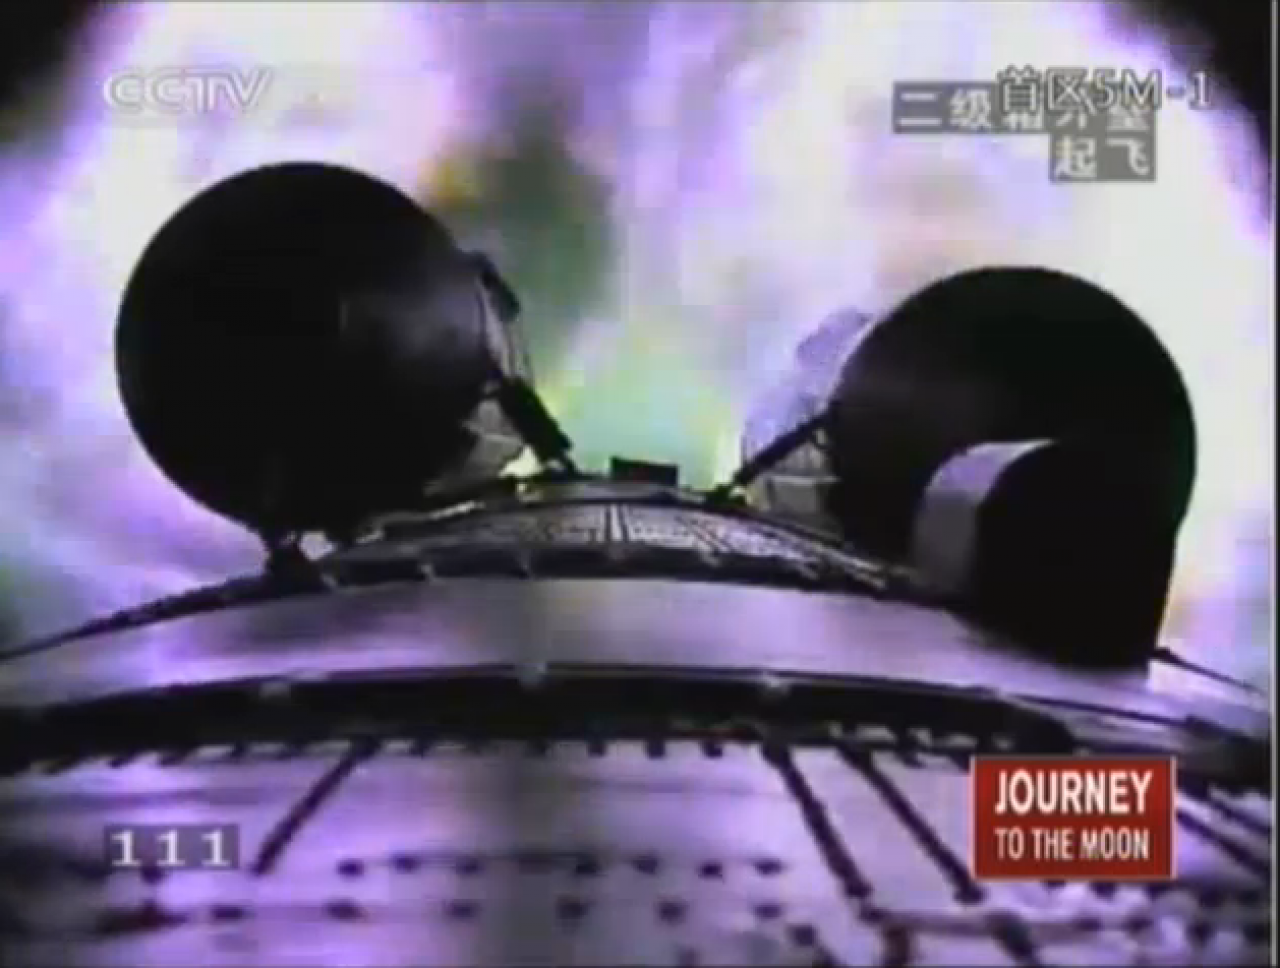 China's Chang'e-3 around two minutes after liftoff atop a Long March IIIB rocket.